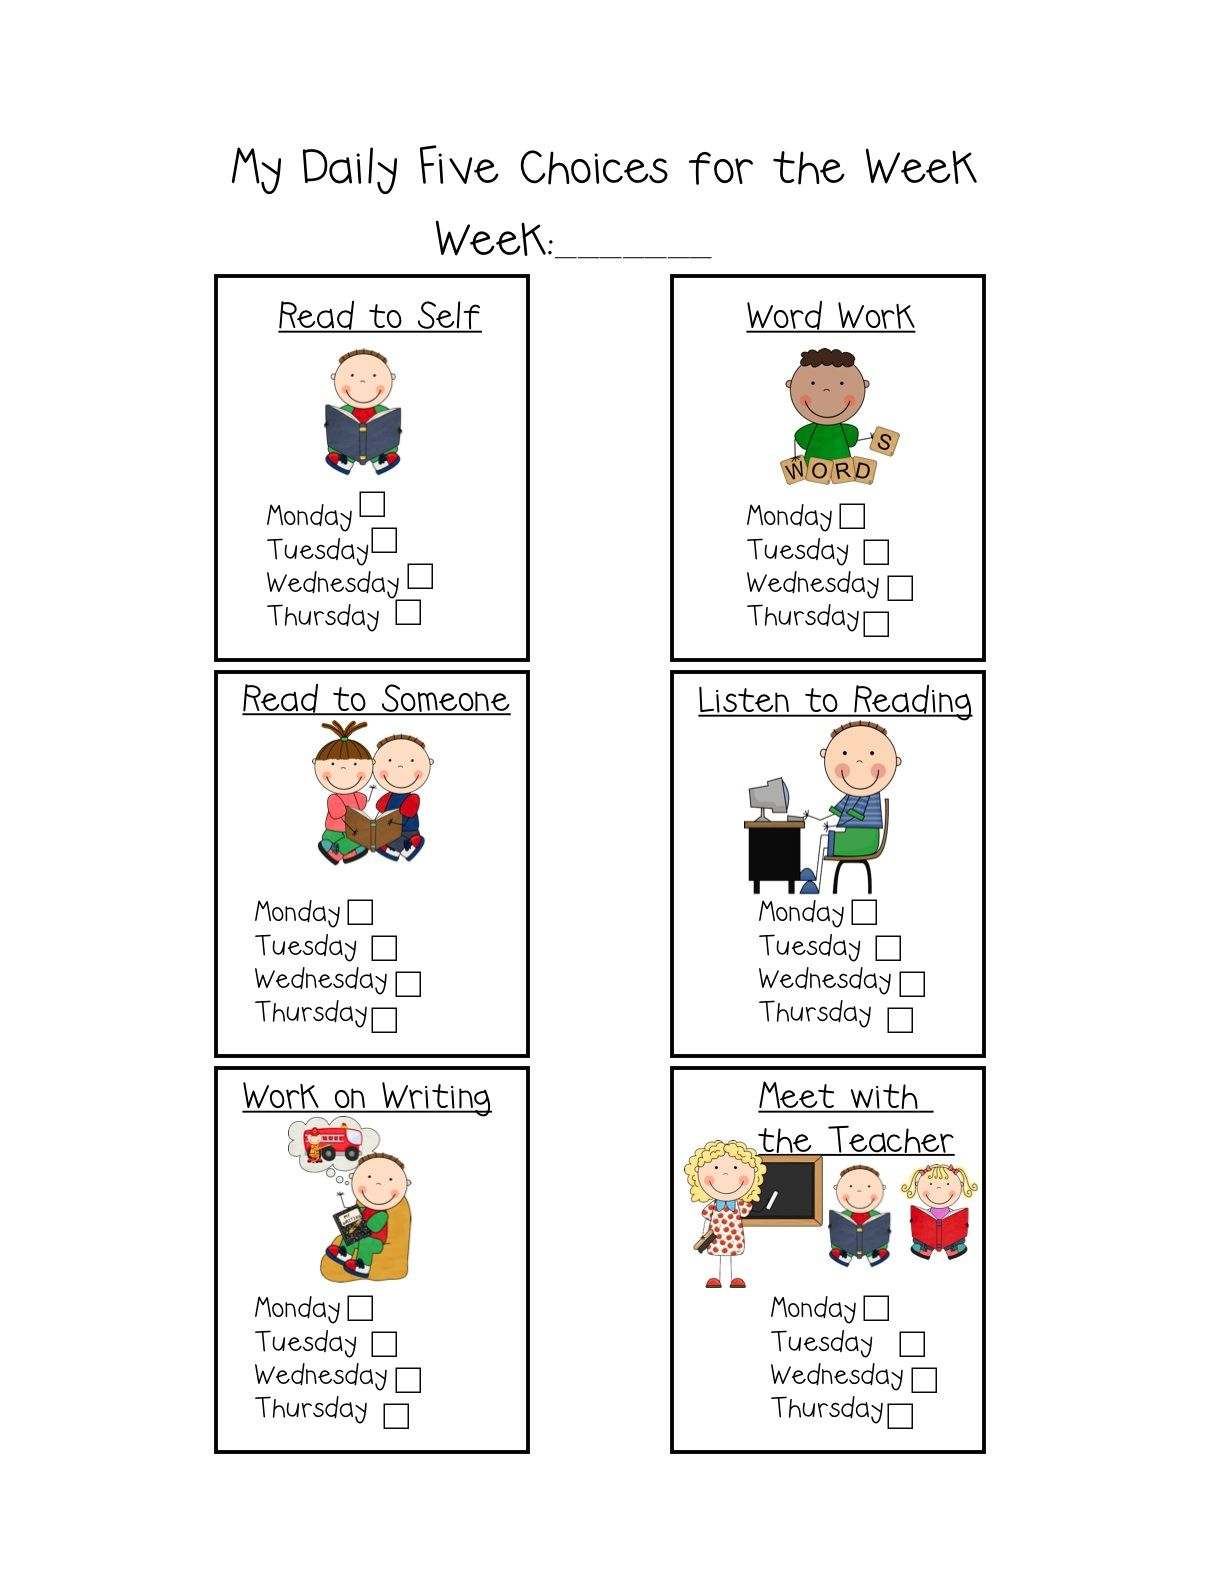 Daily Five Choice Schedule